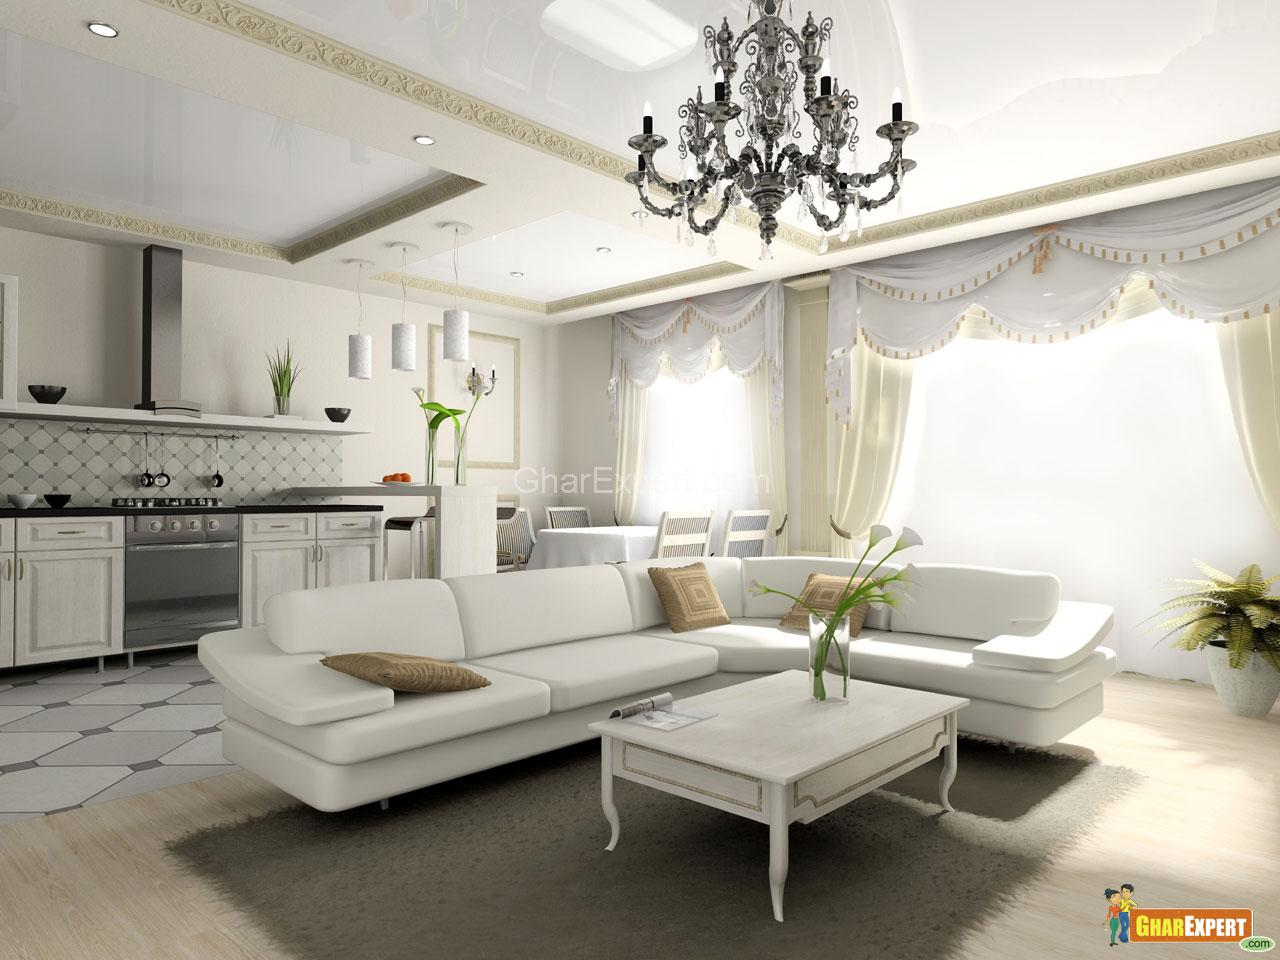 Modern drawing room gharexpert for Beautiful drawing rooms interior